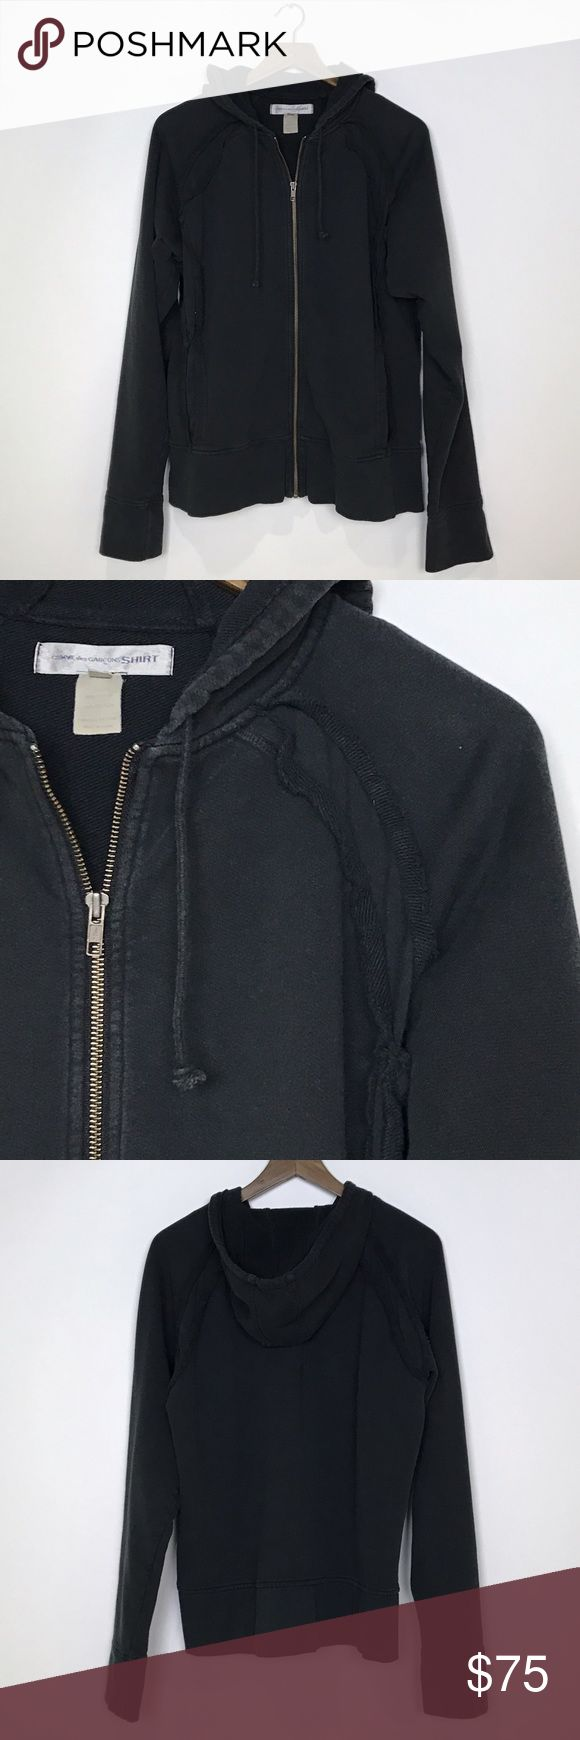 """[Comme Des Garçons SHIRT] Black Zip Up Hoodie CDG Blac zip up hoodie sweatshirt by Comme Des Garçons SHIRT. Side pockets. Long raglan sleeves. Has a faded/vintage look by design. Soft.  Fabric: 100% Cotton Armpit to Armpit: 23"""" Length: 26"""" Condition: Good pre-owned condition. Faded finish by design. Comme des Garcons Shirts Sweatshirts & Hoodies"""